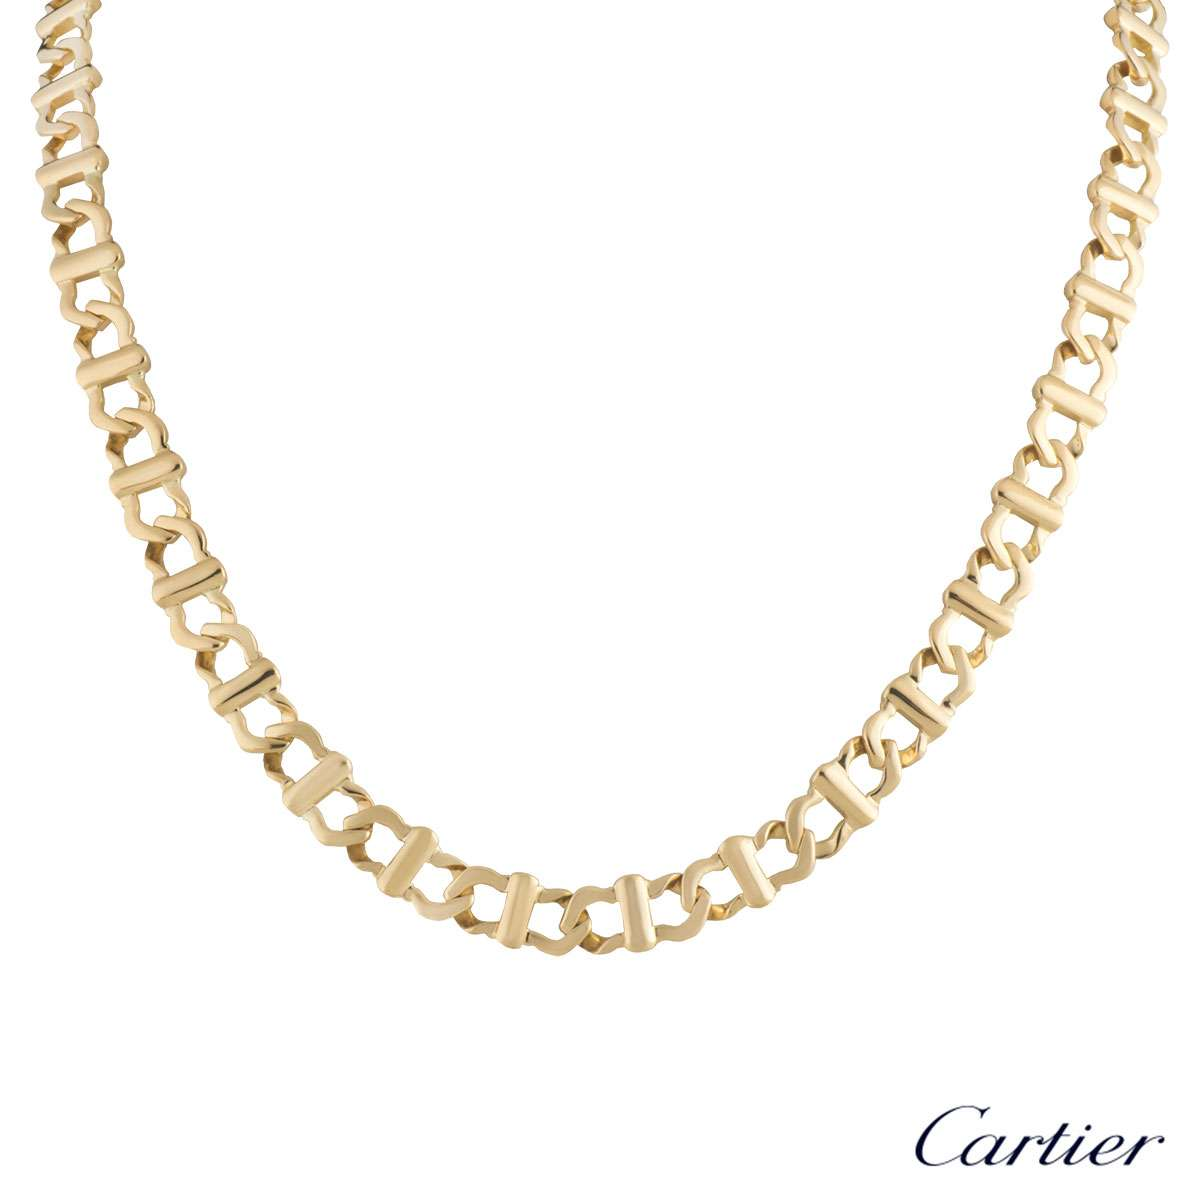 Cartier Yellow Gold Chain